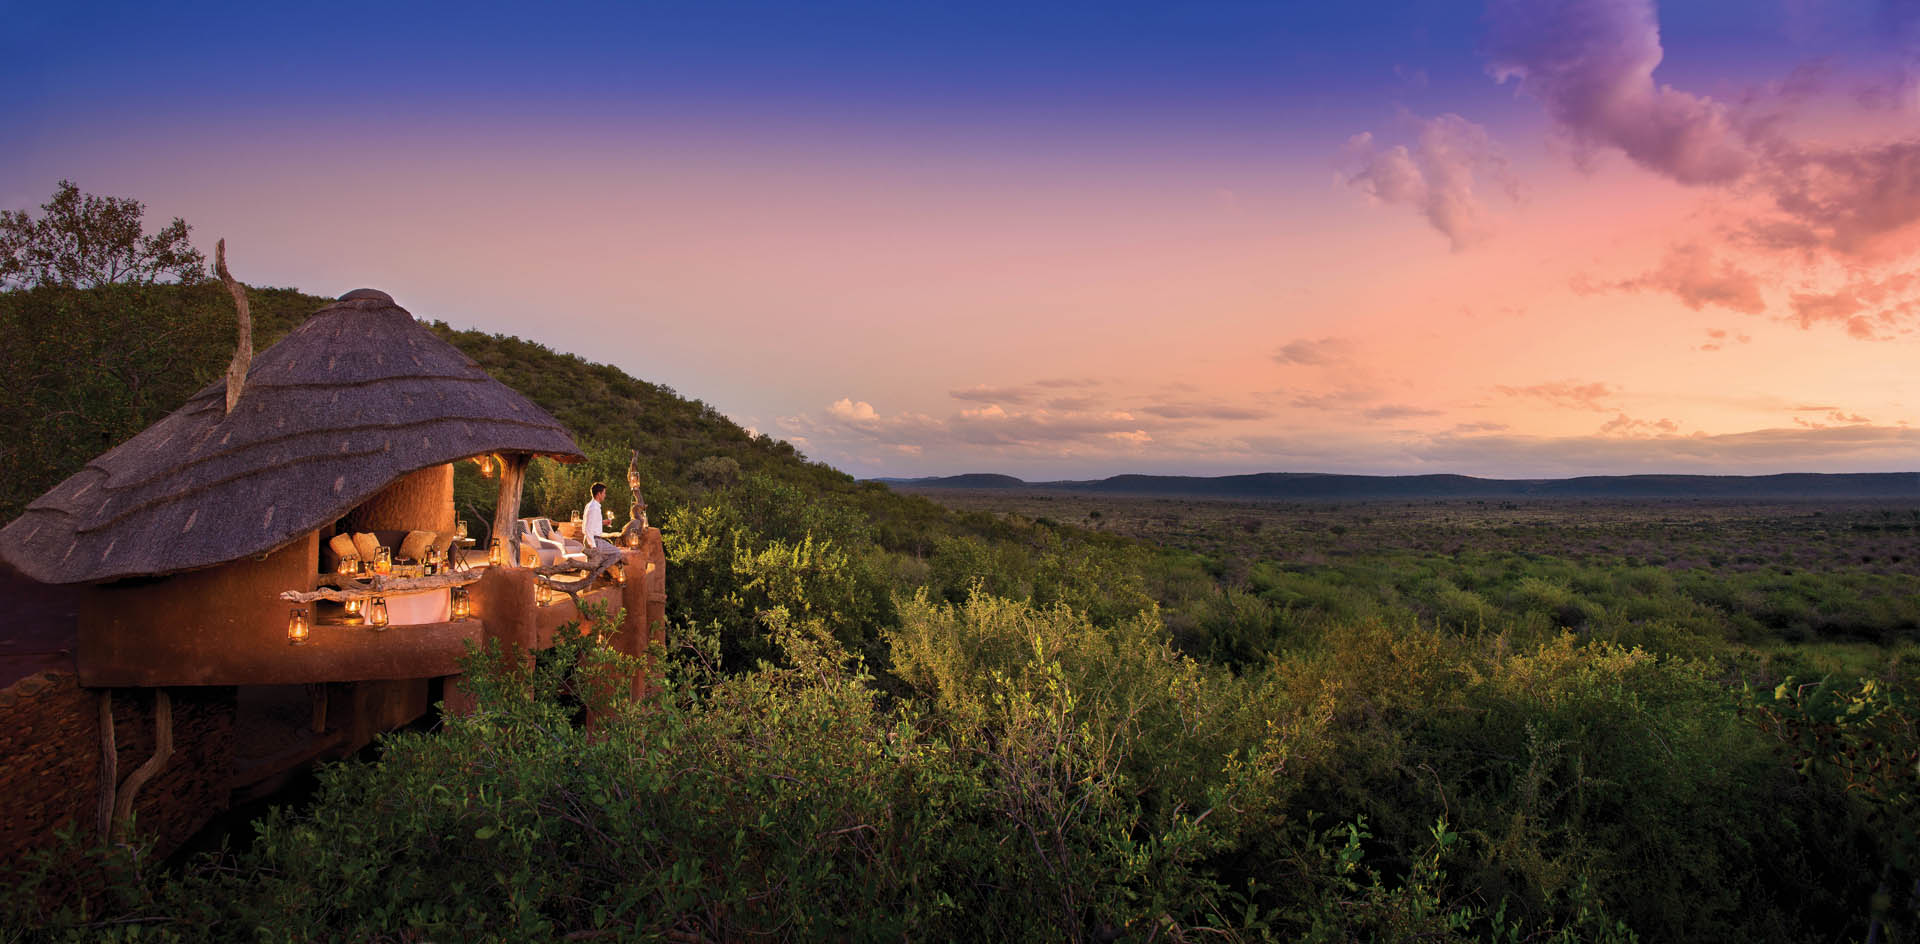 Sotuh Africa, Madikwe Game Reserve, panoramic views